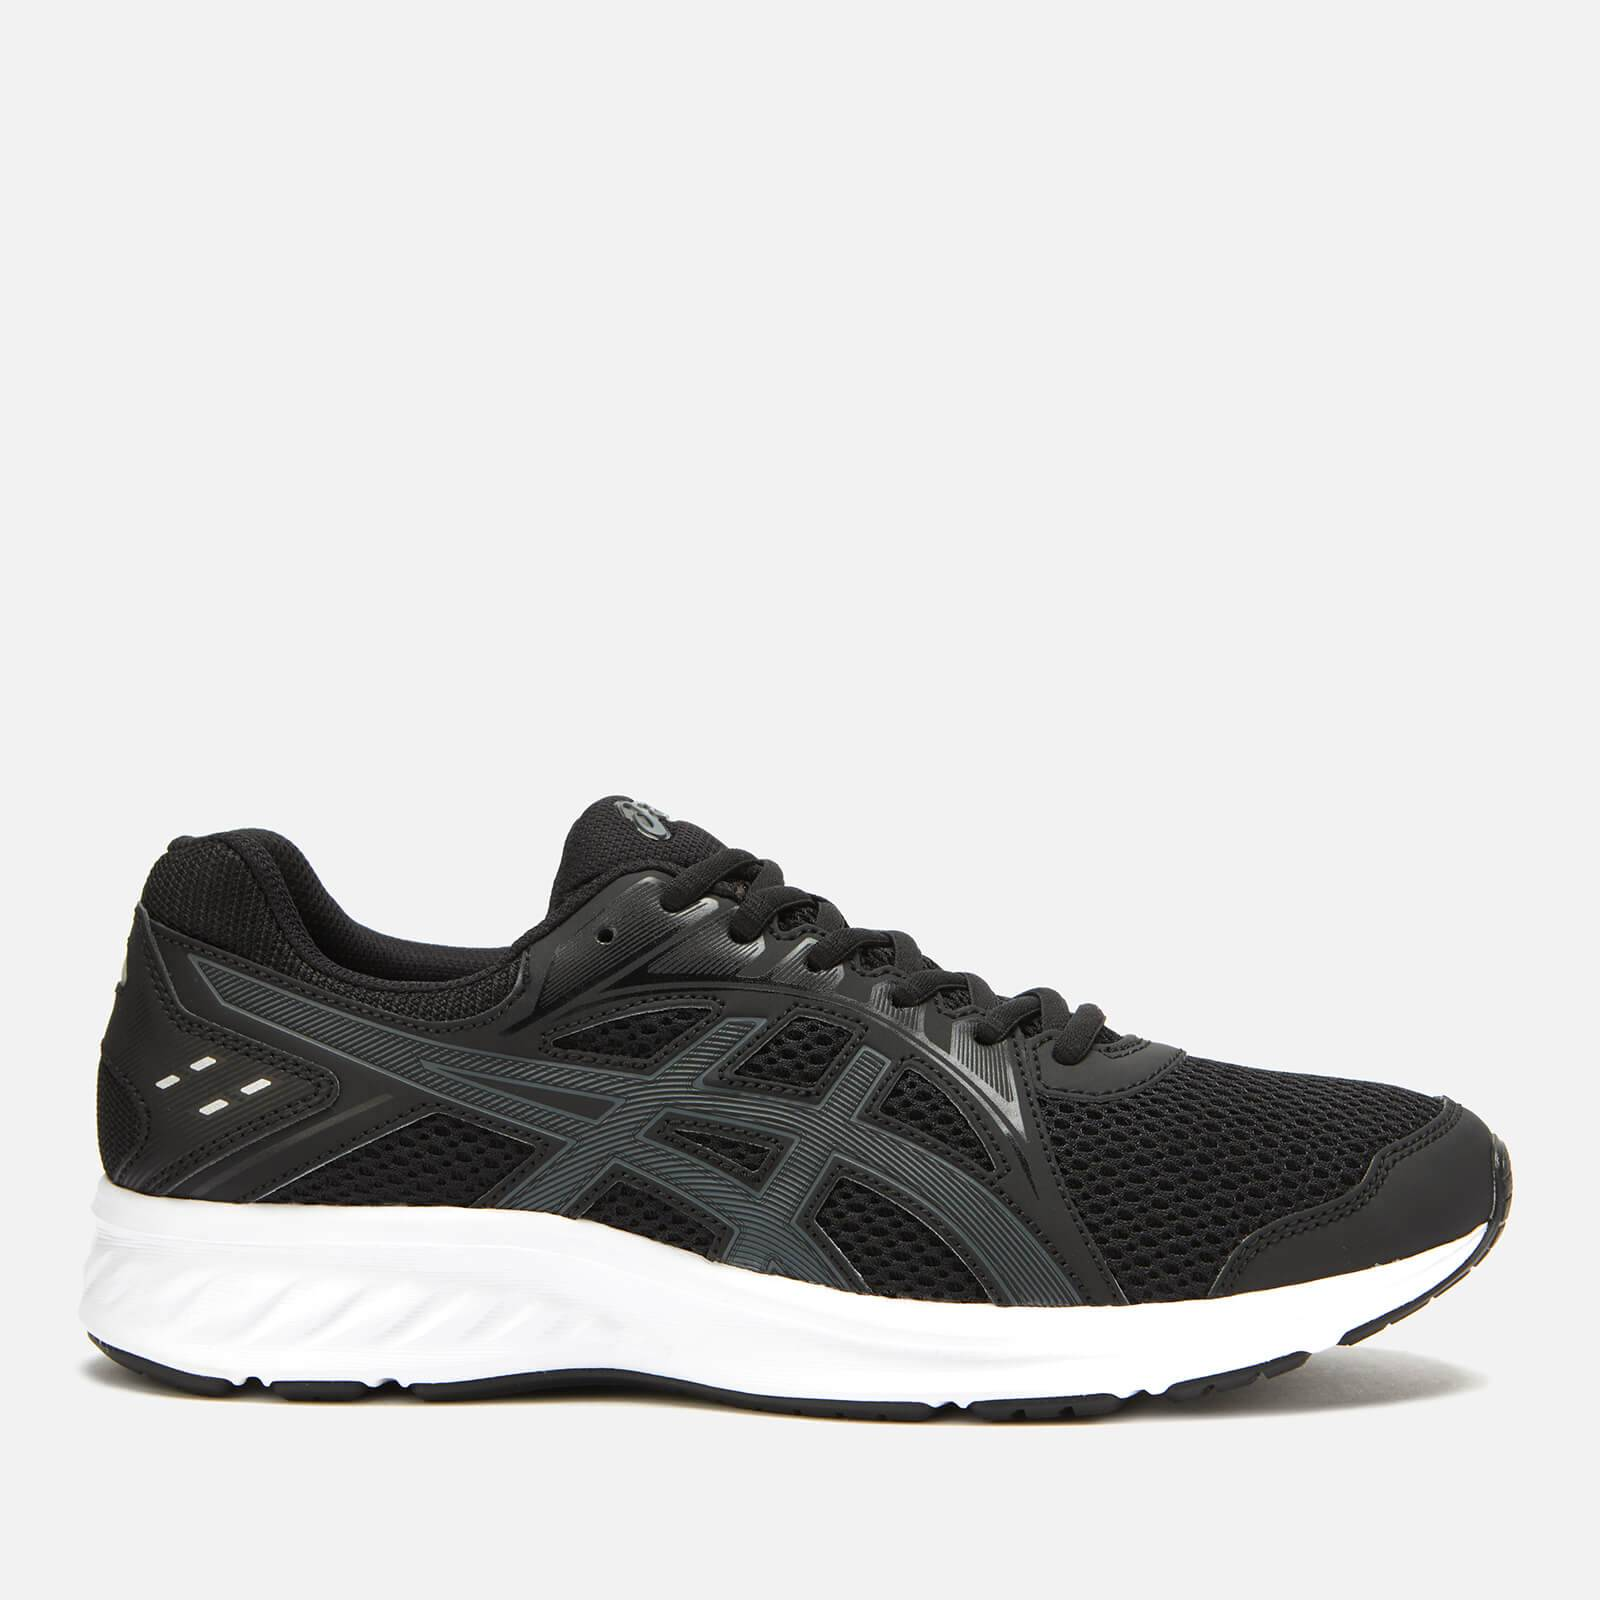 Asics Men's Running Jolt 2 Trainers - Black/Steel Grey - UK 10 - Black